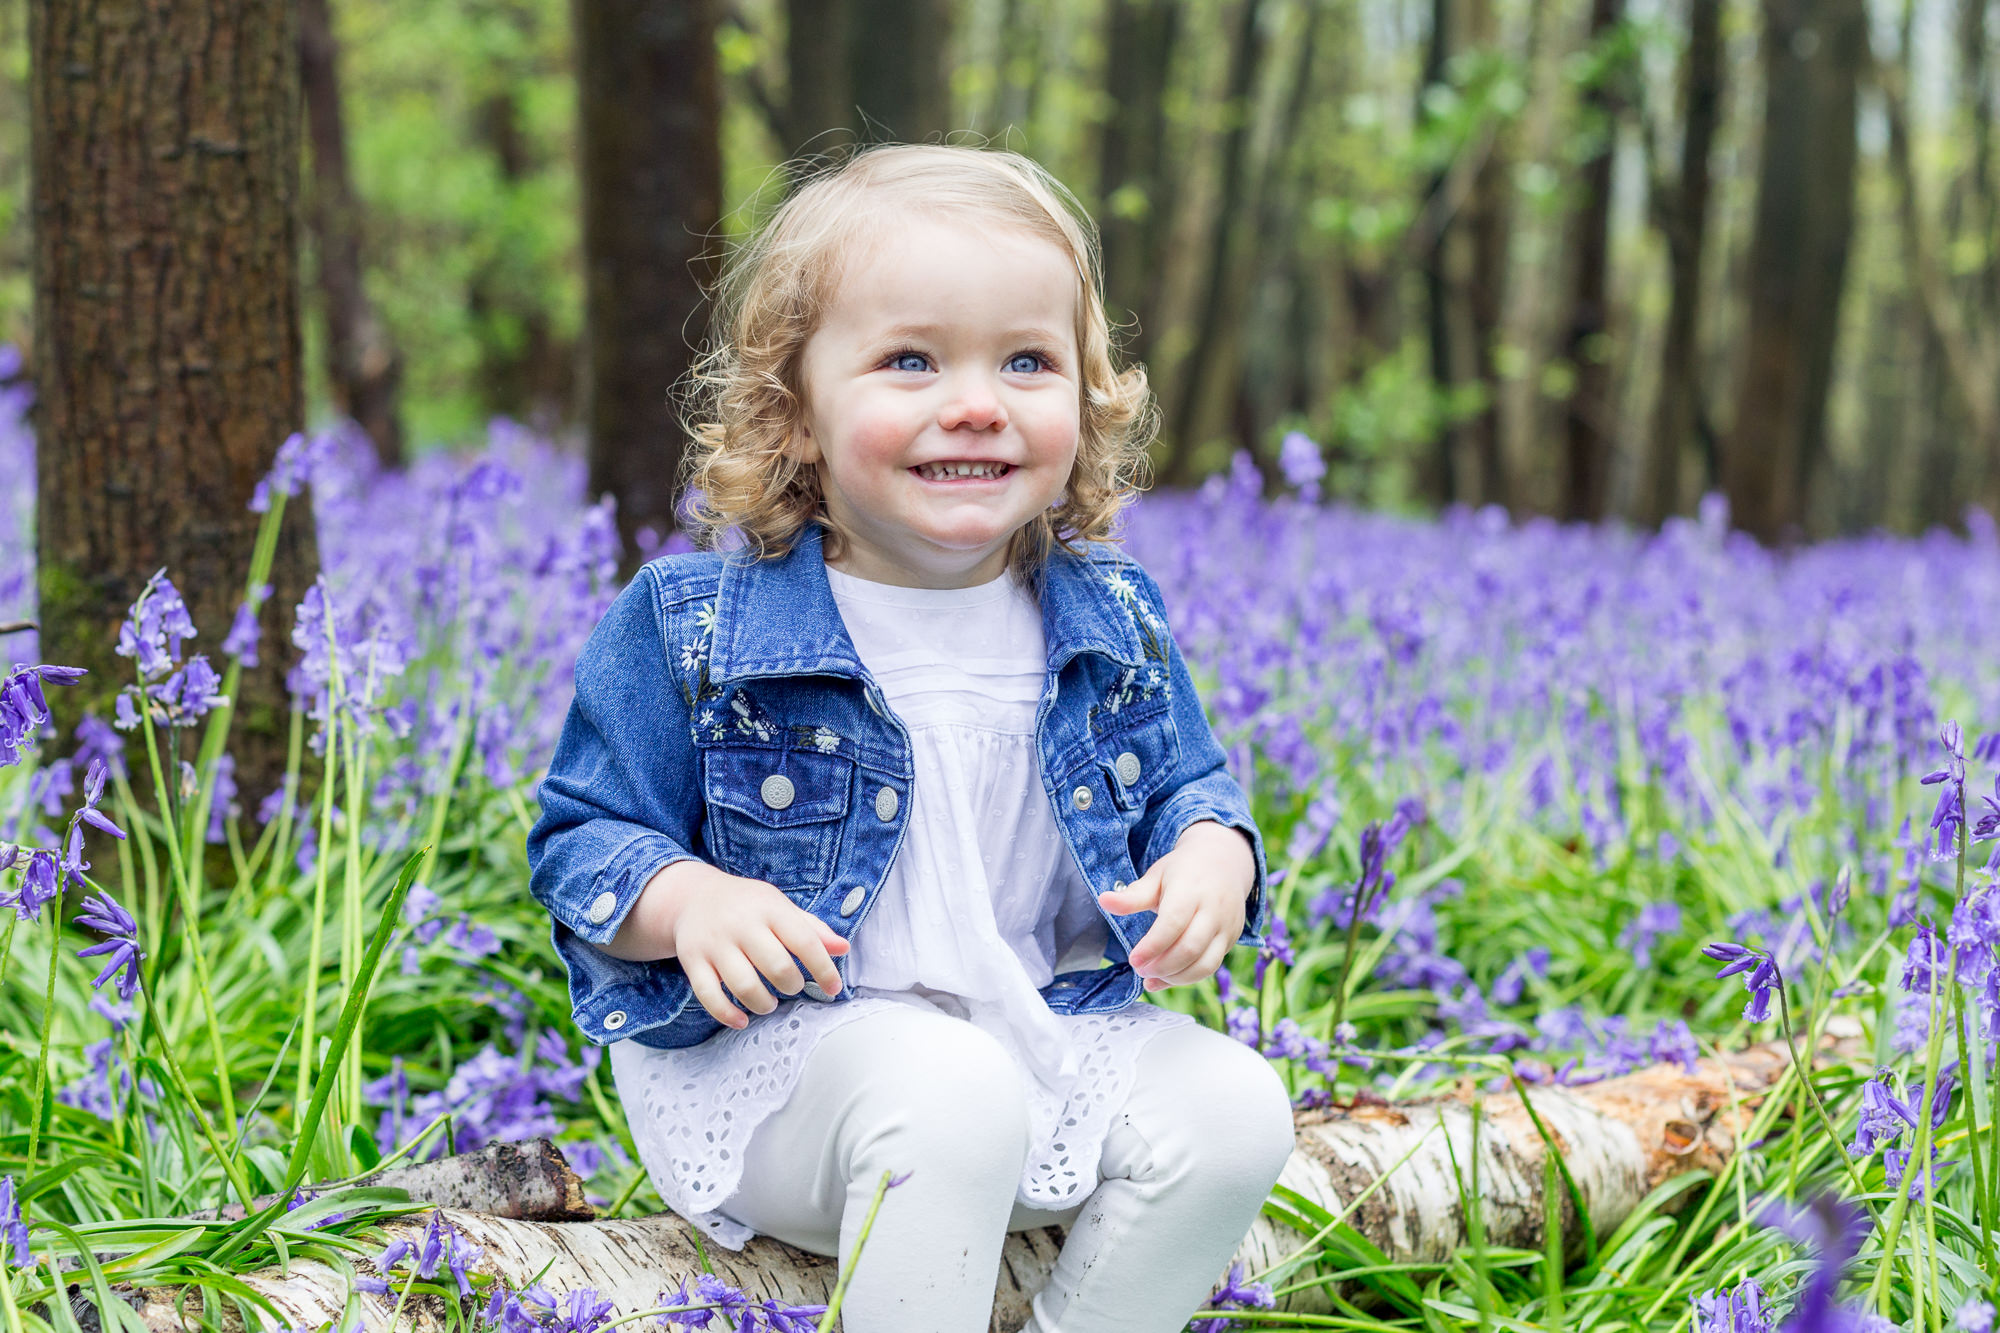 April 2020 – BLUEBELL MINI PHOTOSHOOTS DA2 AND TN15 priority booking list now open